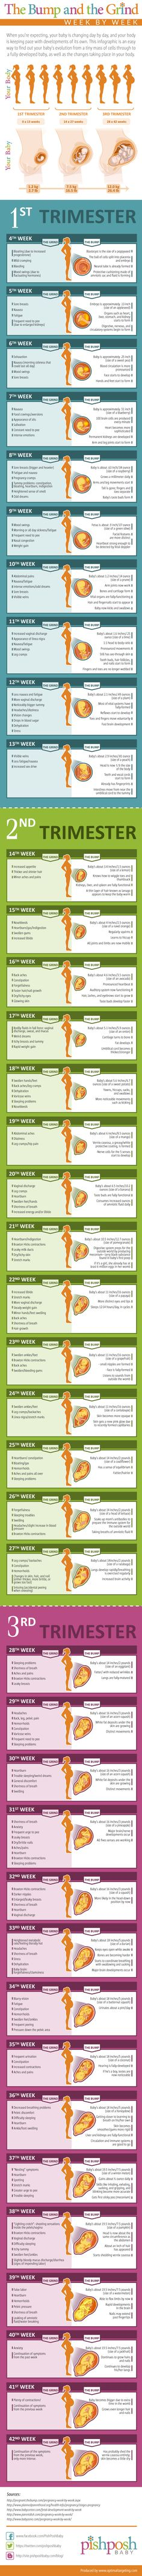 Pregnancy Week by Week Chart - Fun - - Schwanger - Pregnant Tips Pregnancy Chart, Pregnancy Info, Pregnancy Weeks, Pregnancy Timeline, Pregnancy Health, Pregnancy Symptoms By Week, Pregnancy Facts, Pregnancy Bump, Pregnancy Pictures